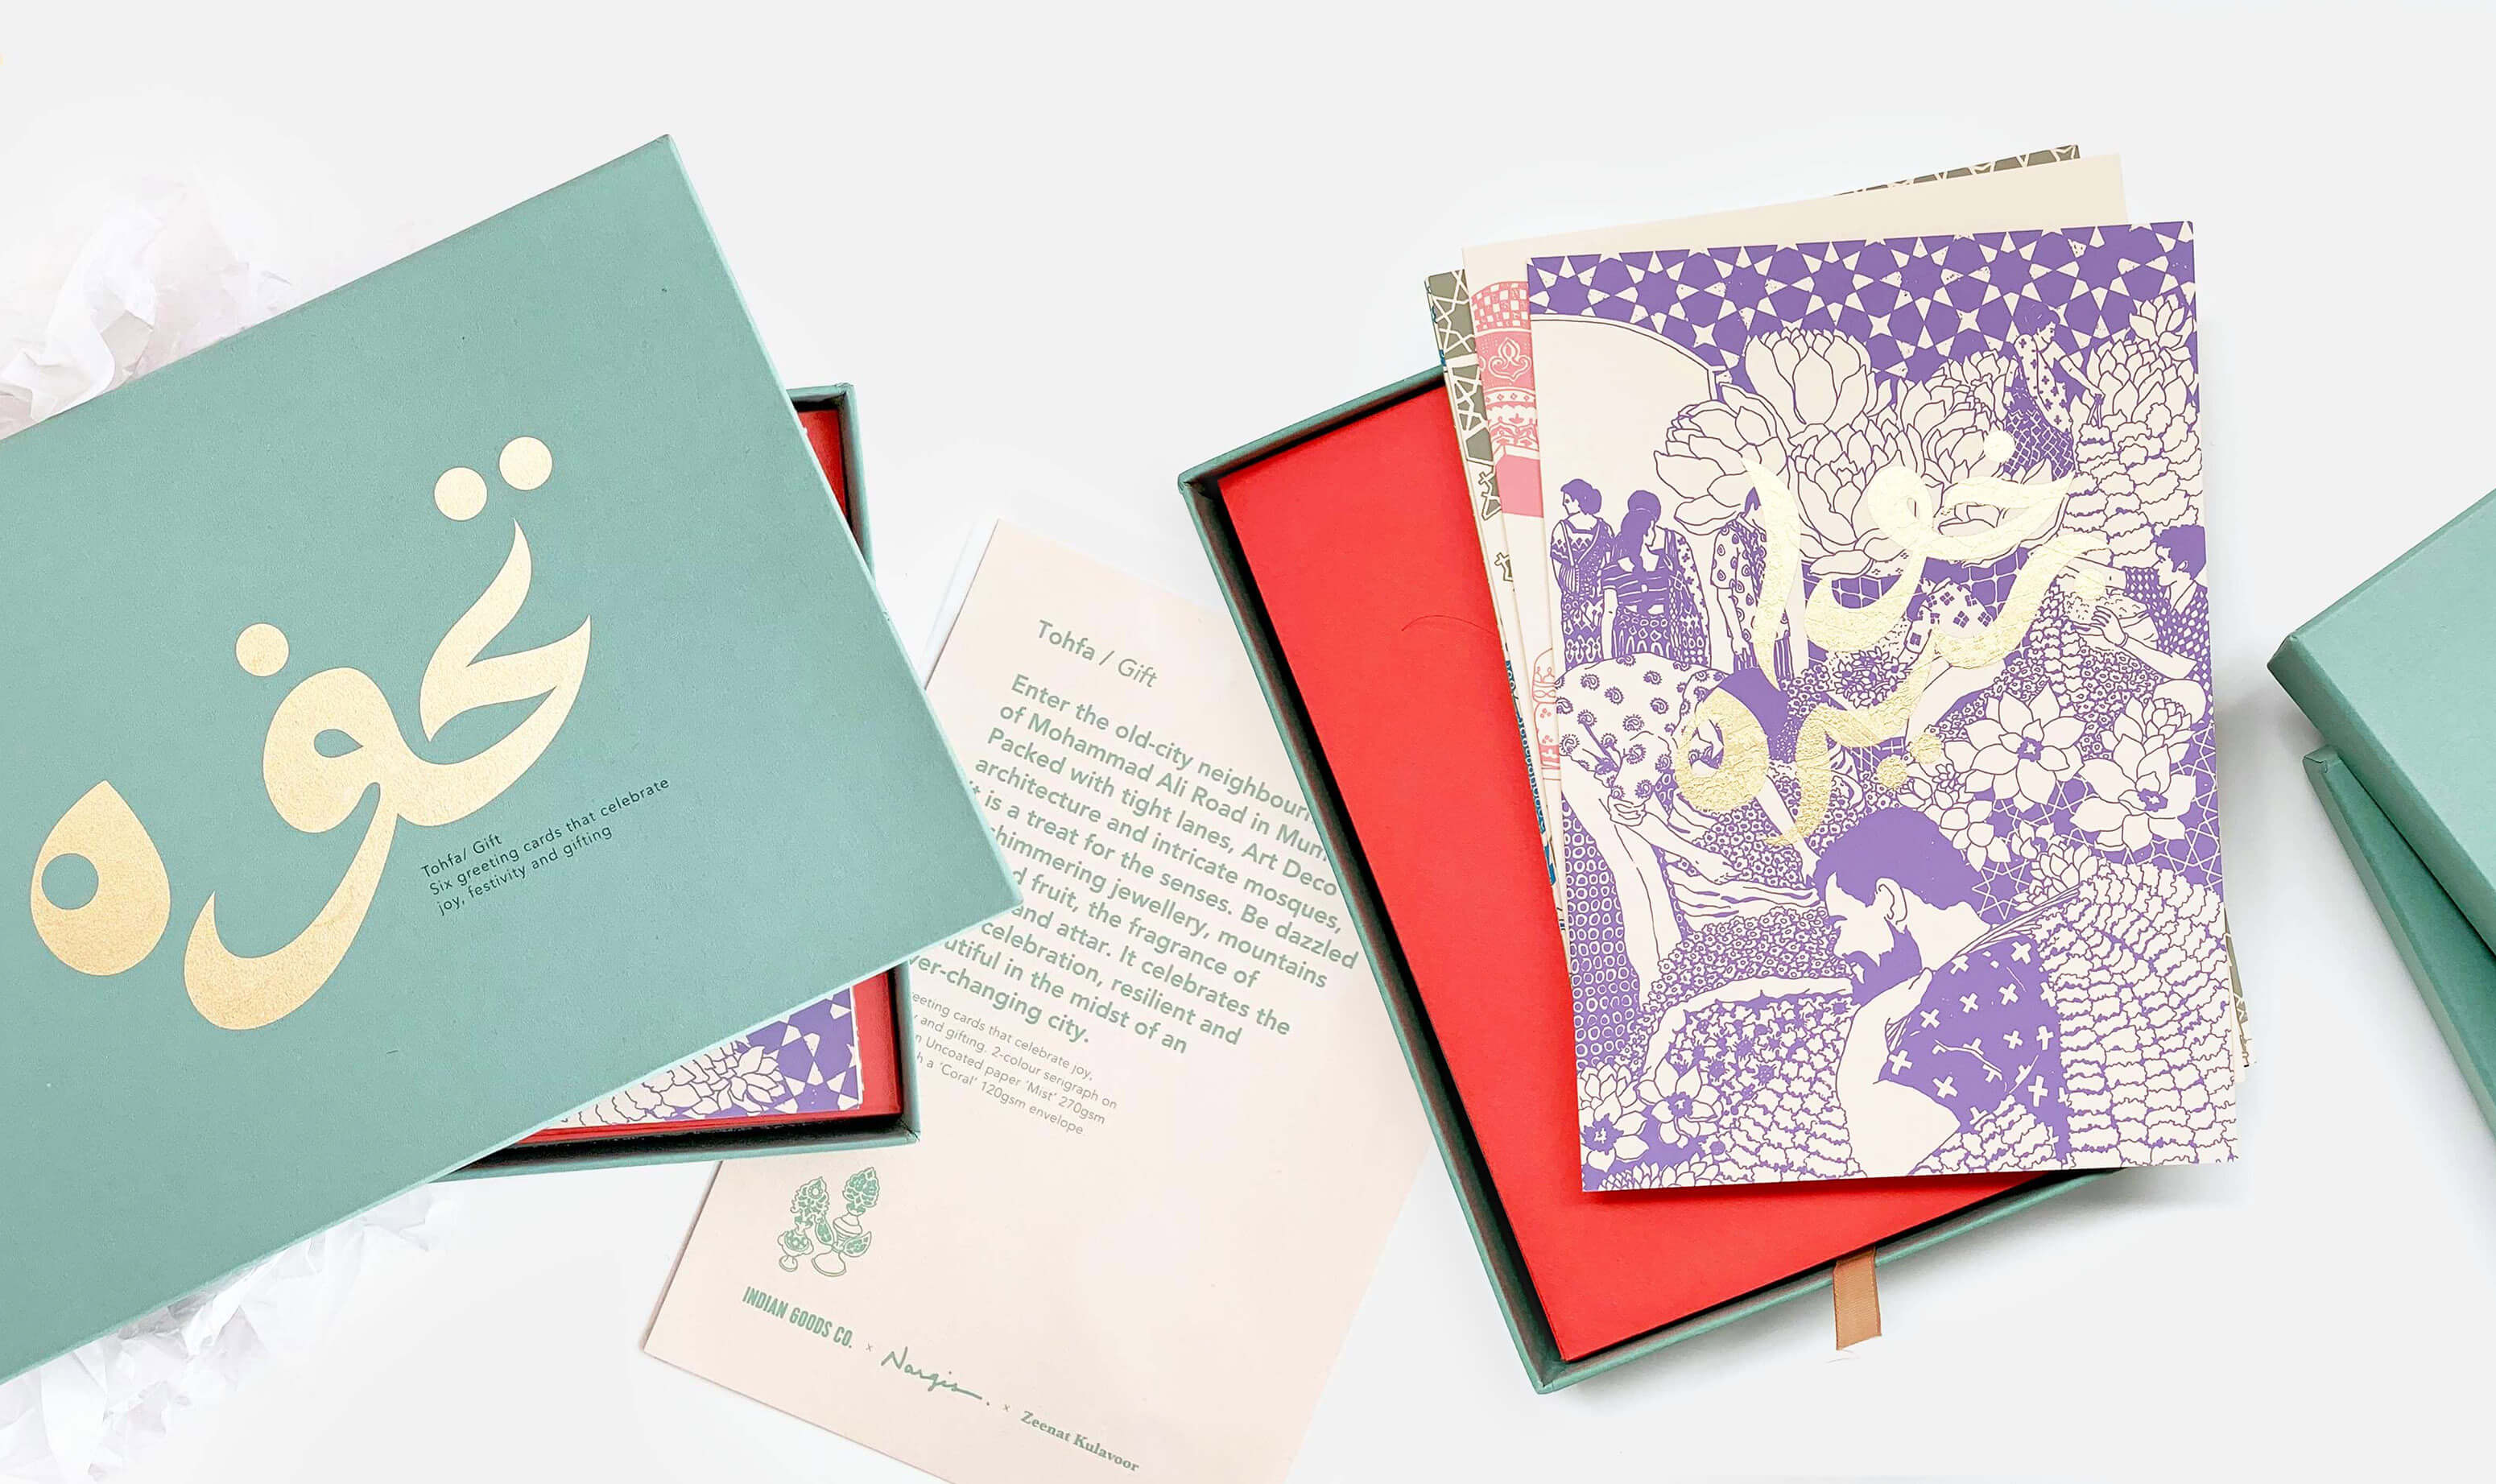 Green box and violet greeting card with screen printed image of flowers and gold Urdu calligraphy on a white table with orange envelope